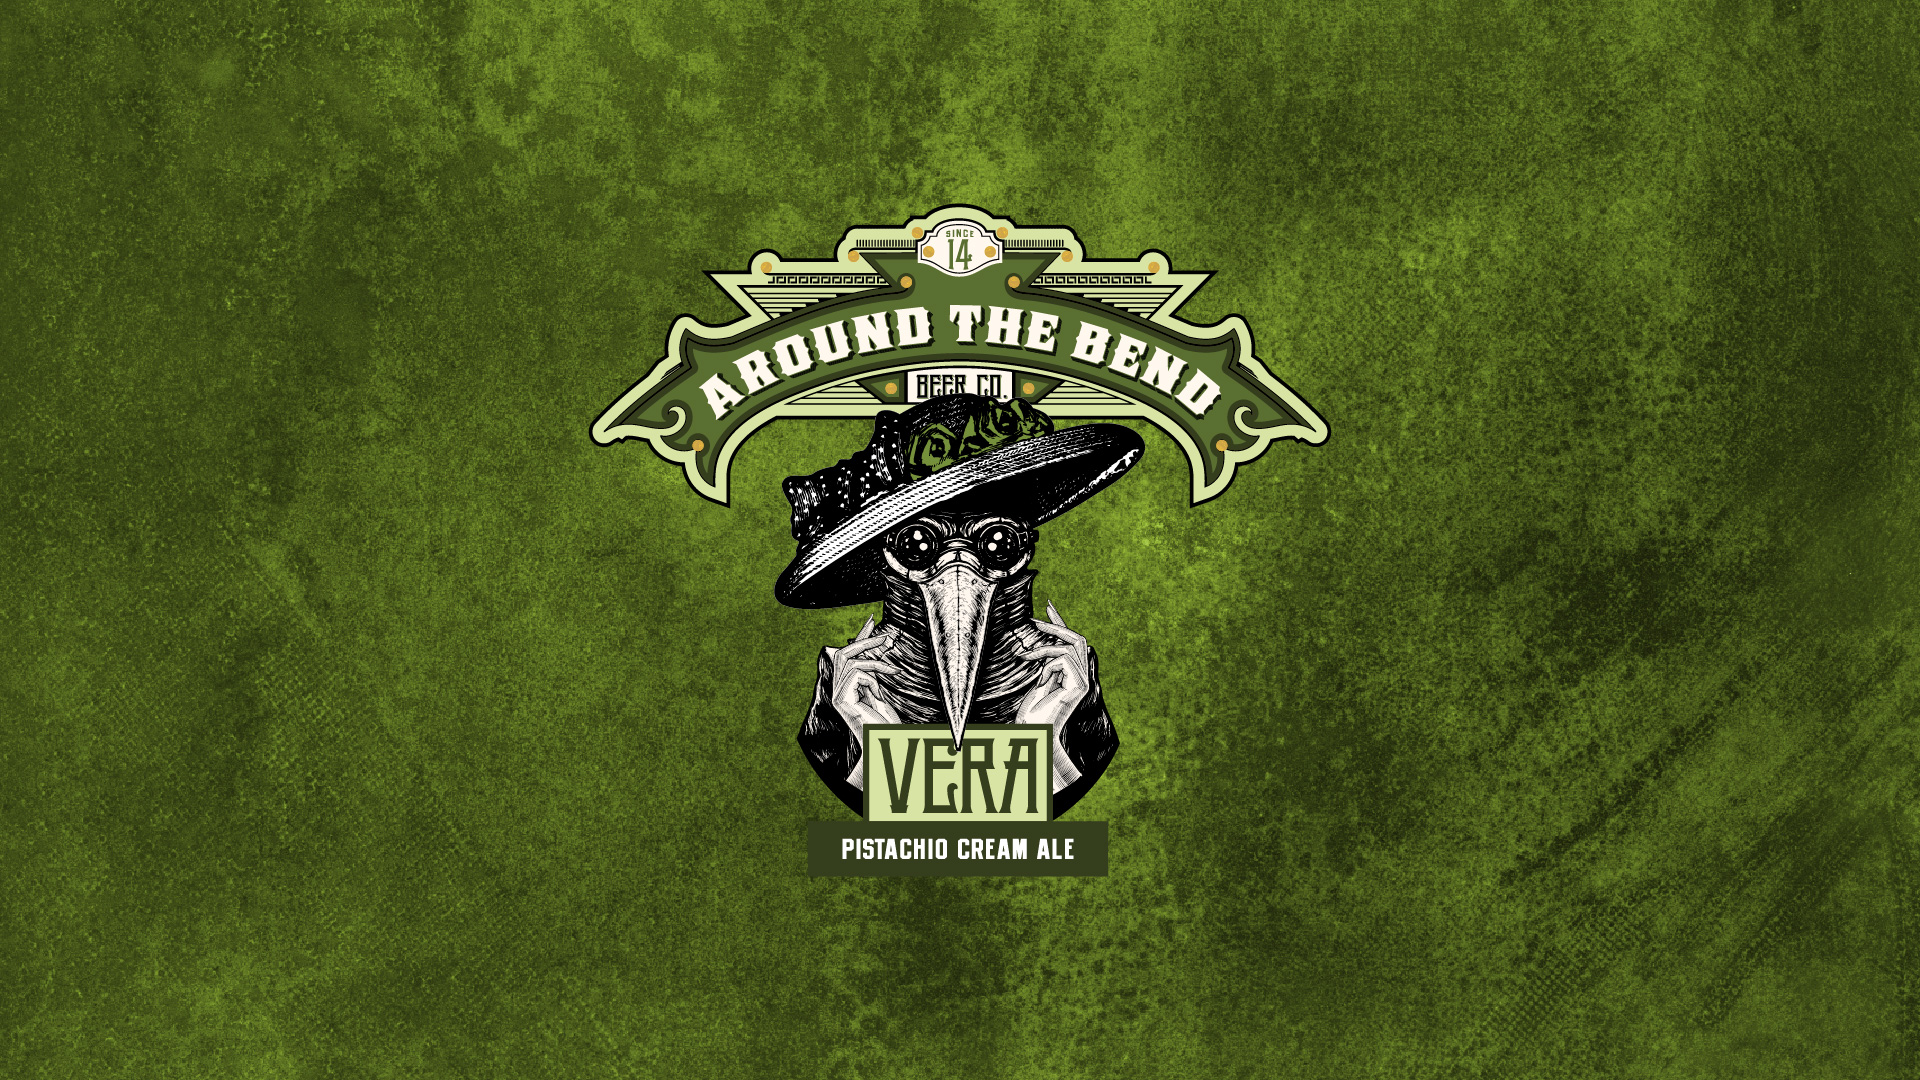 Oz Mfg. Company Around The Bend Beer Co. Vera Pistachio Cream Ale Branding